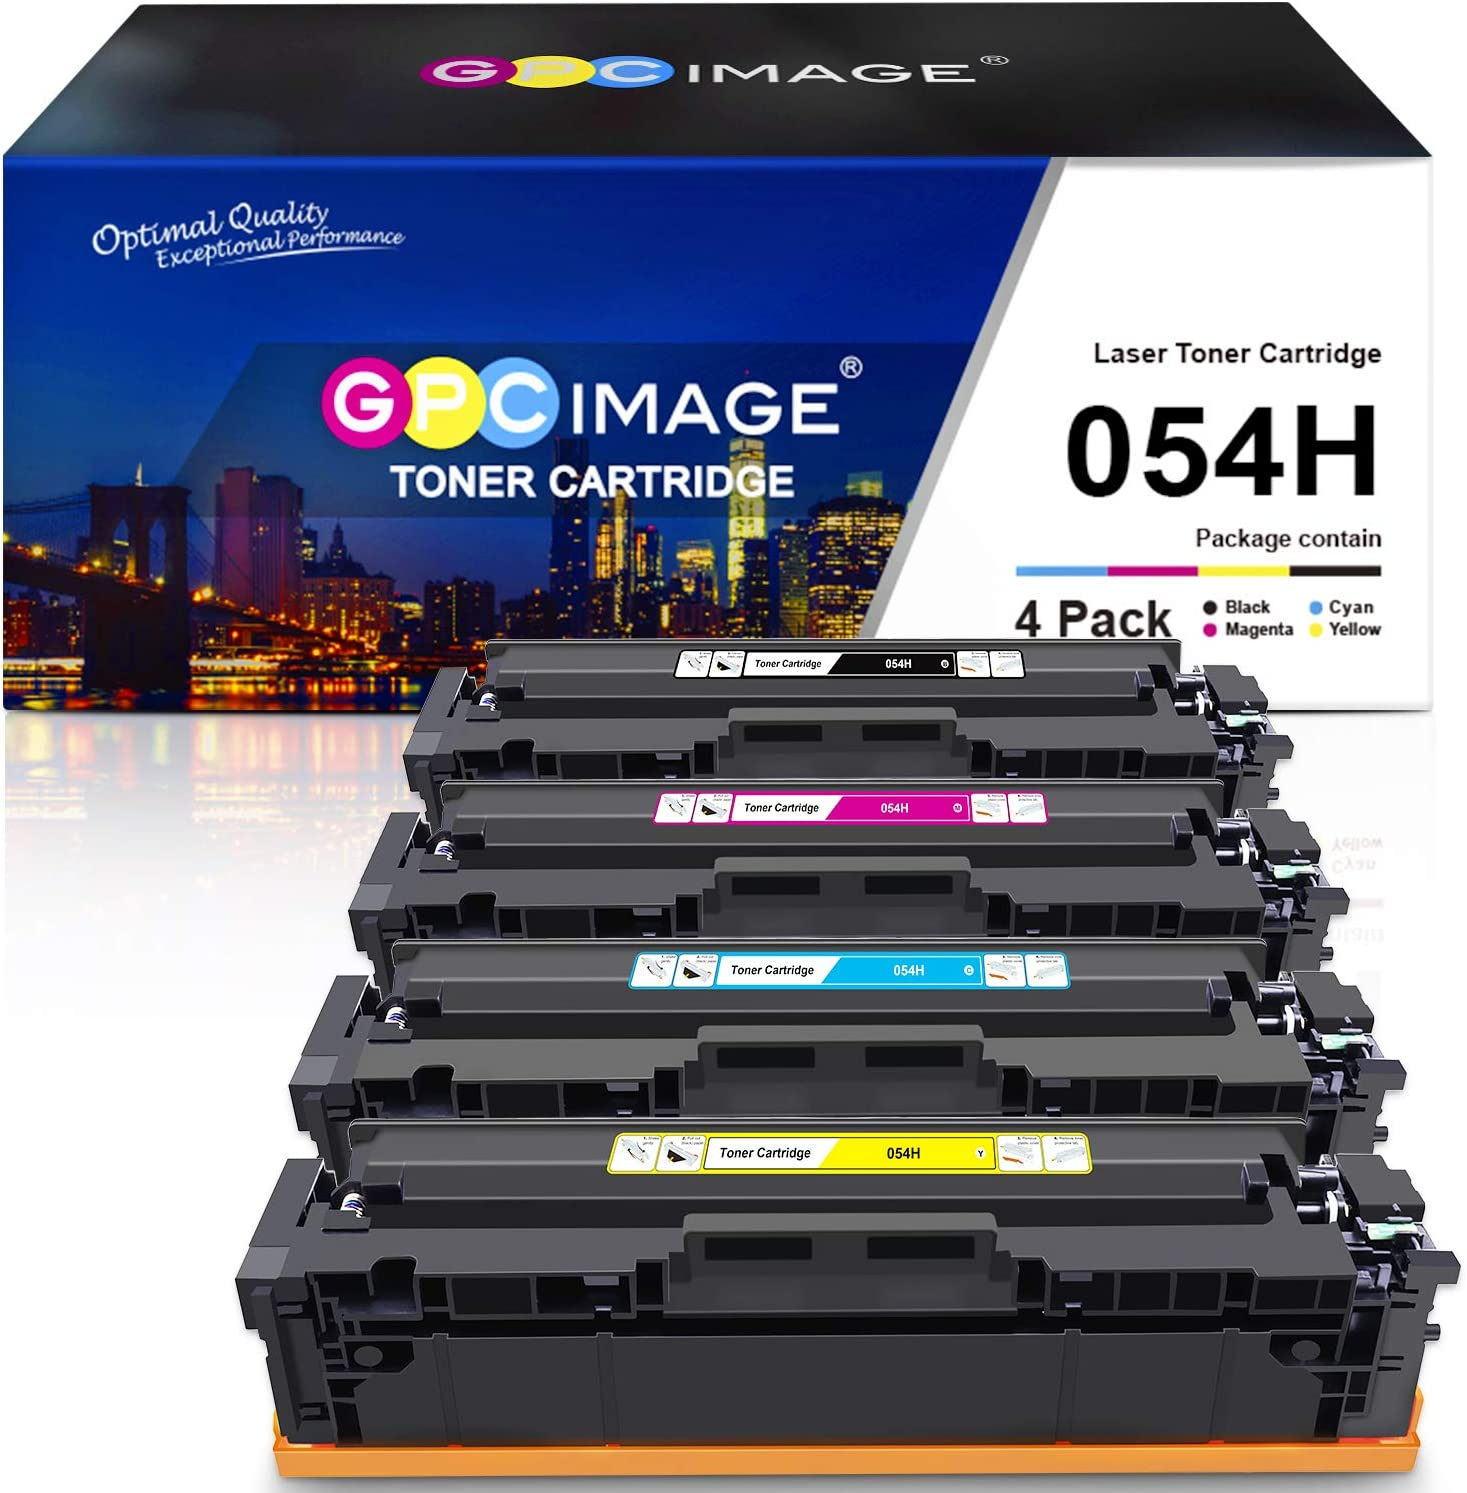 GPC Image Compatible Toner Cartridge Replacement for Canon 054H Cartridge 054H CRG 054 to use with ImageClass LBP622Cdw MF644Cdw MF642Cdw MF640C LBP620 Toner Printer Ink (Black, Cyan, Magenta, Yellow)